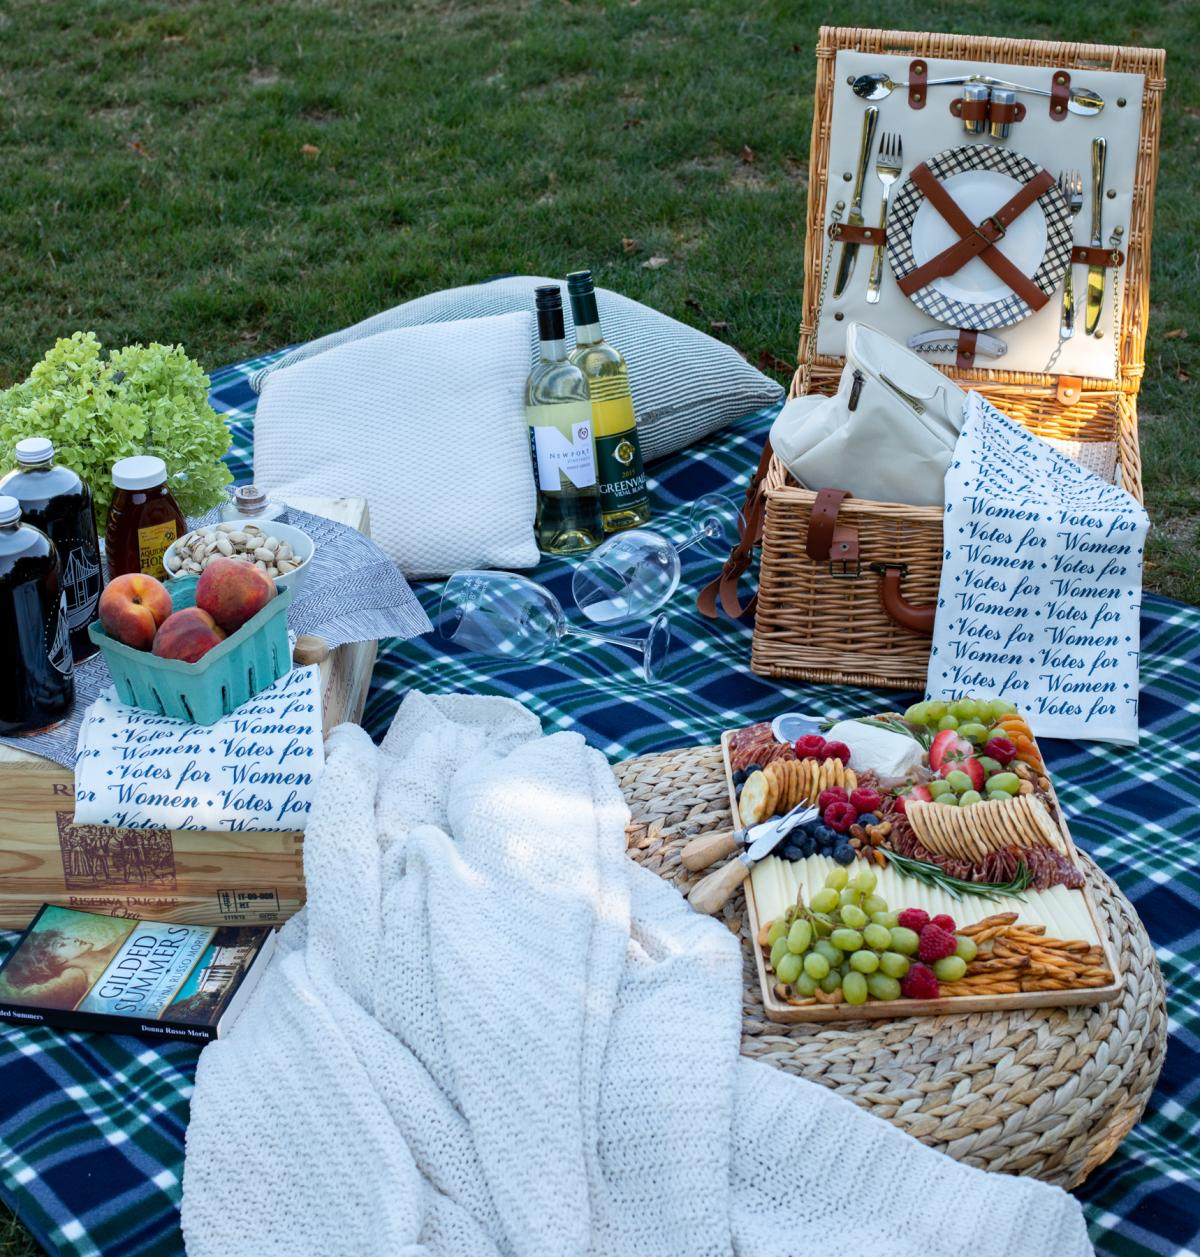 Picnic Blanket With Food, Peaches And Wine Glasses